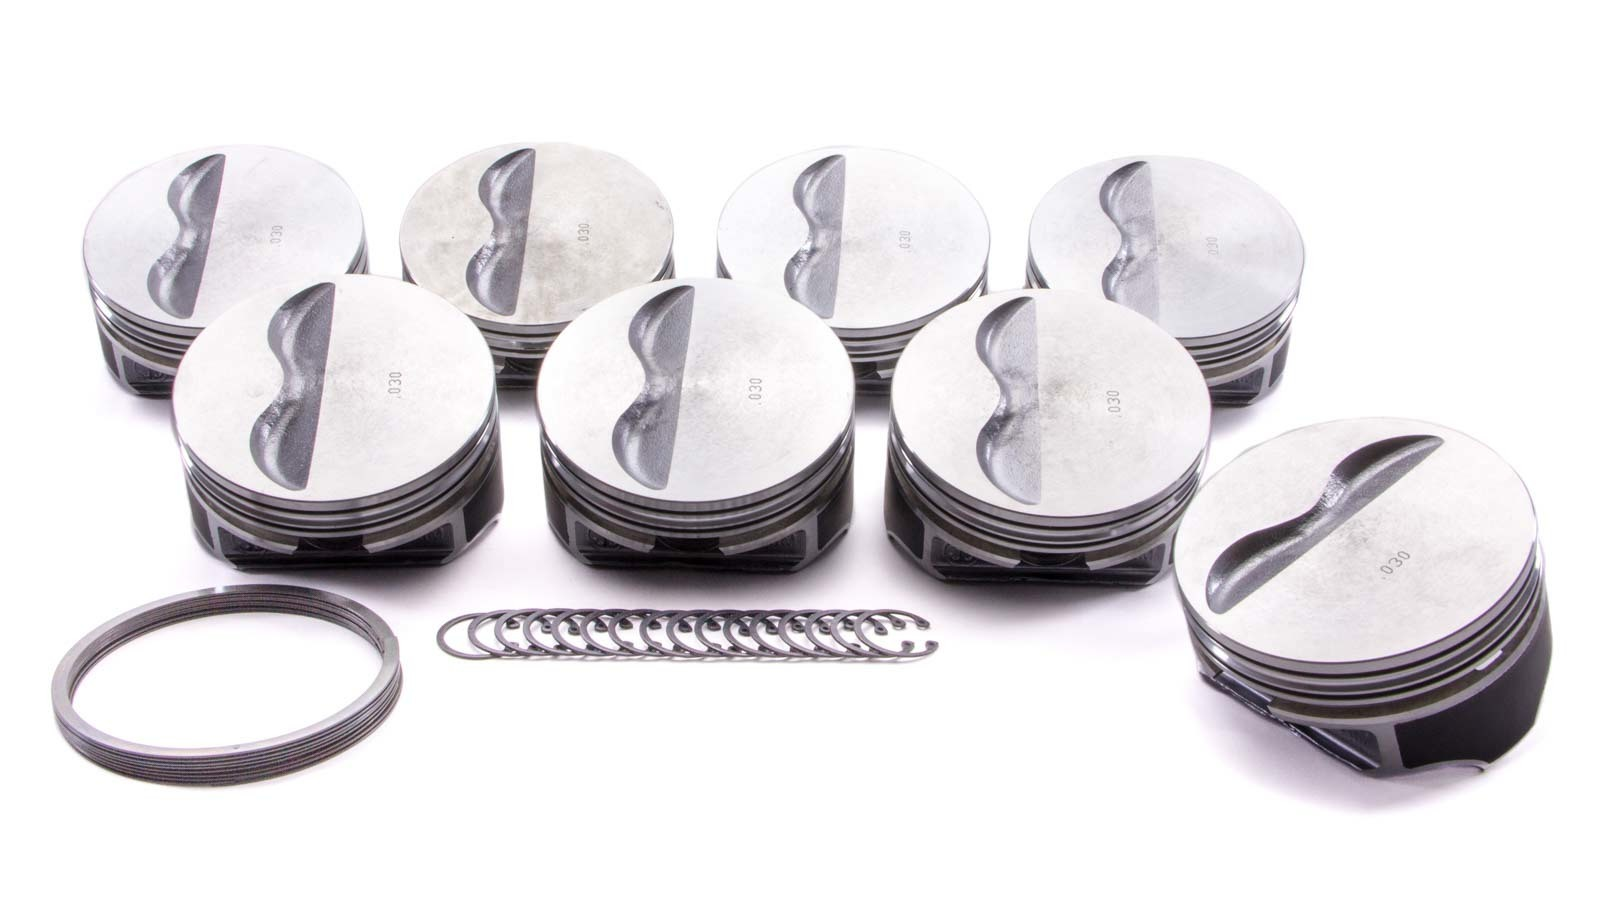 KB Performance Pistons 9909HC.030 Piston, Claimer Series, Hypereutectic, 4.030 in Bore, 1/16 x 1/16 x 3/16 in Ring Grooves, Minus 5.0 cc, Small Block Chevy, Set of 8